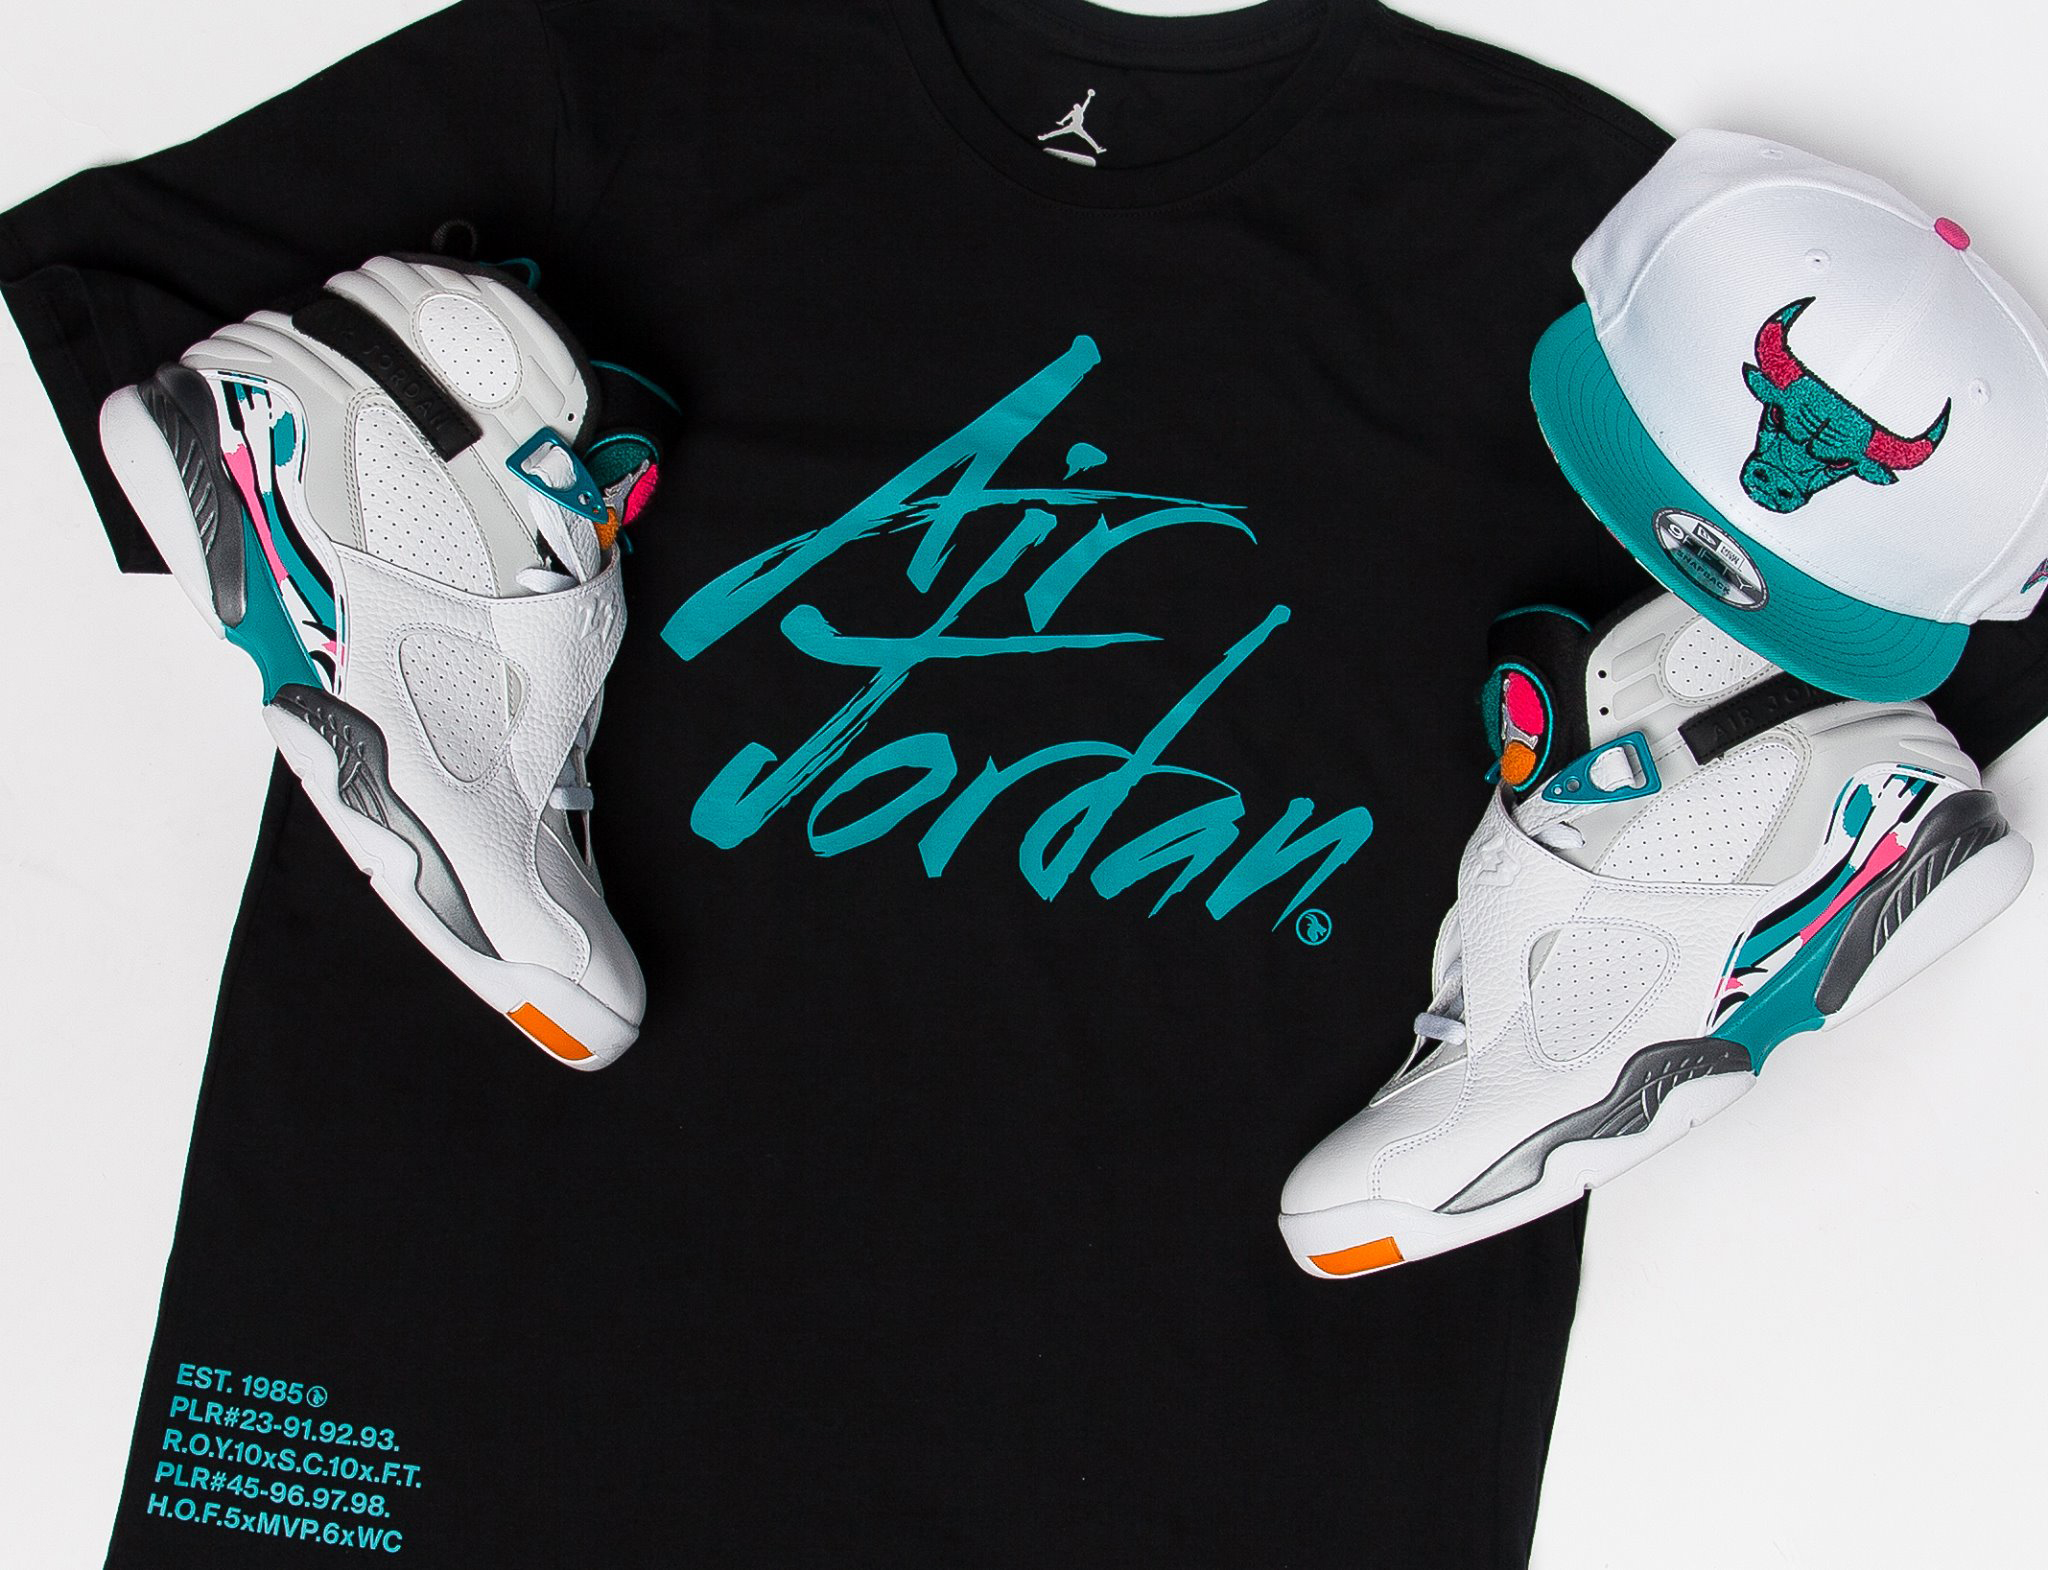 41502e835a4 Jordan 8 South Beach Shirt and Hat Match